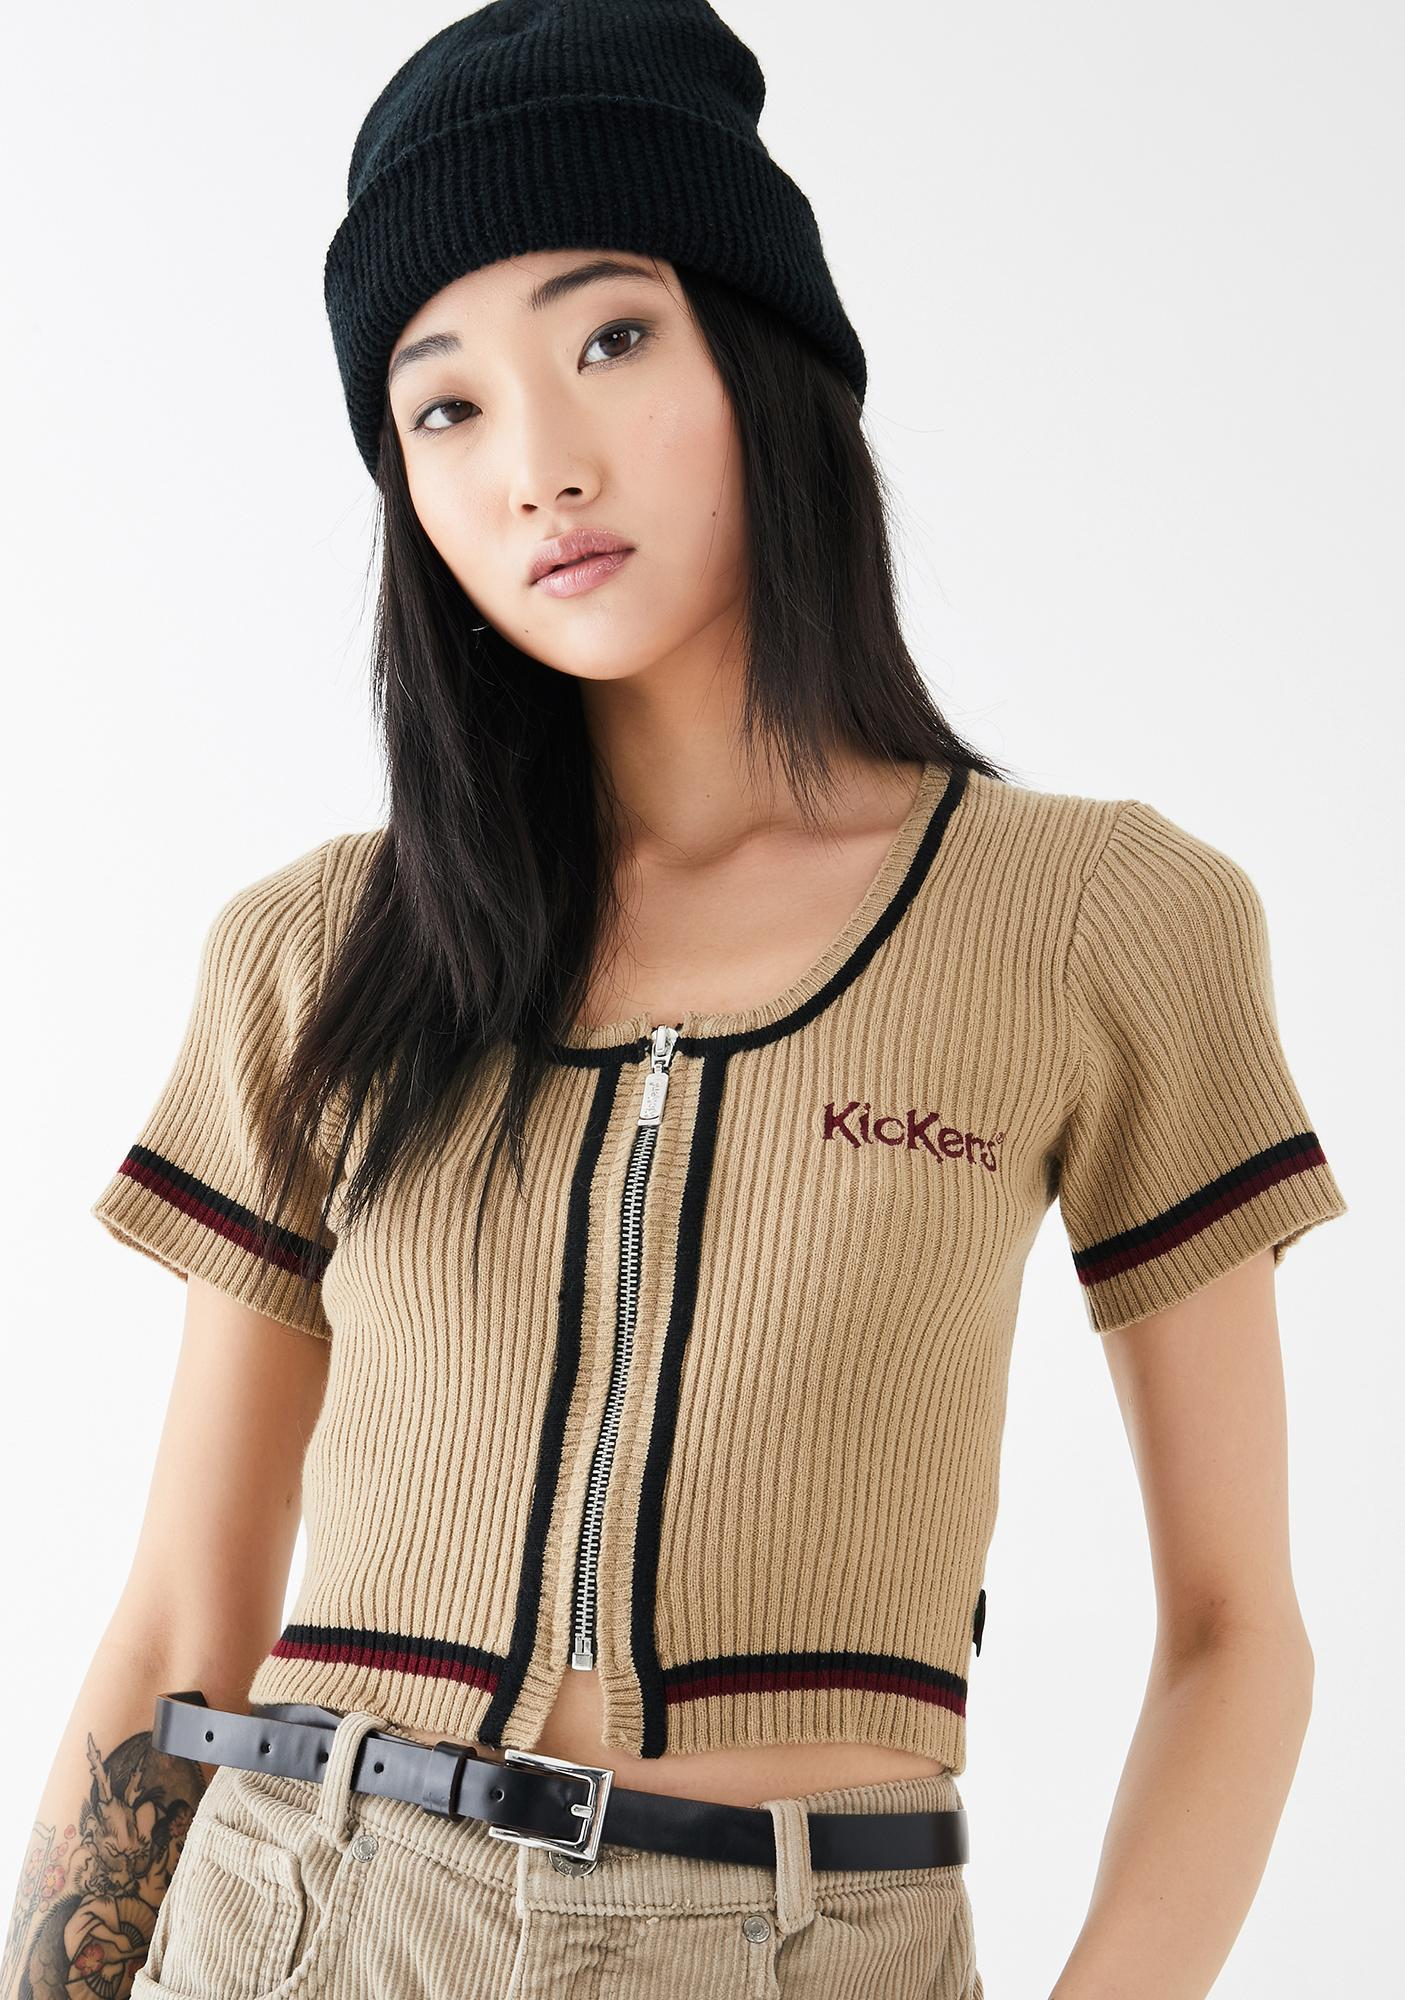 Cropped Knitted Top by Kickers